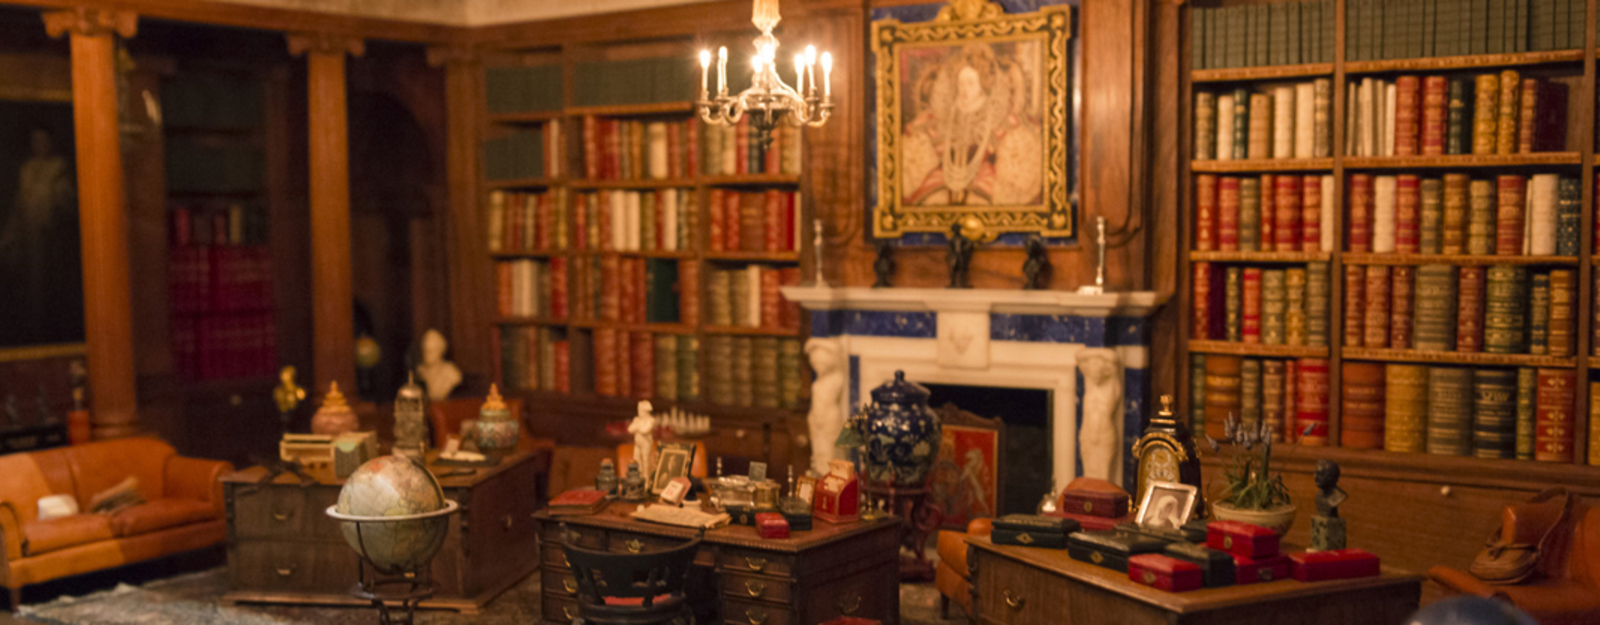 Photograph of the library within Queen Mary's Dolls' House